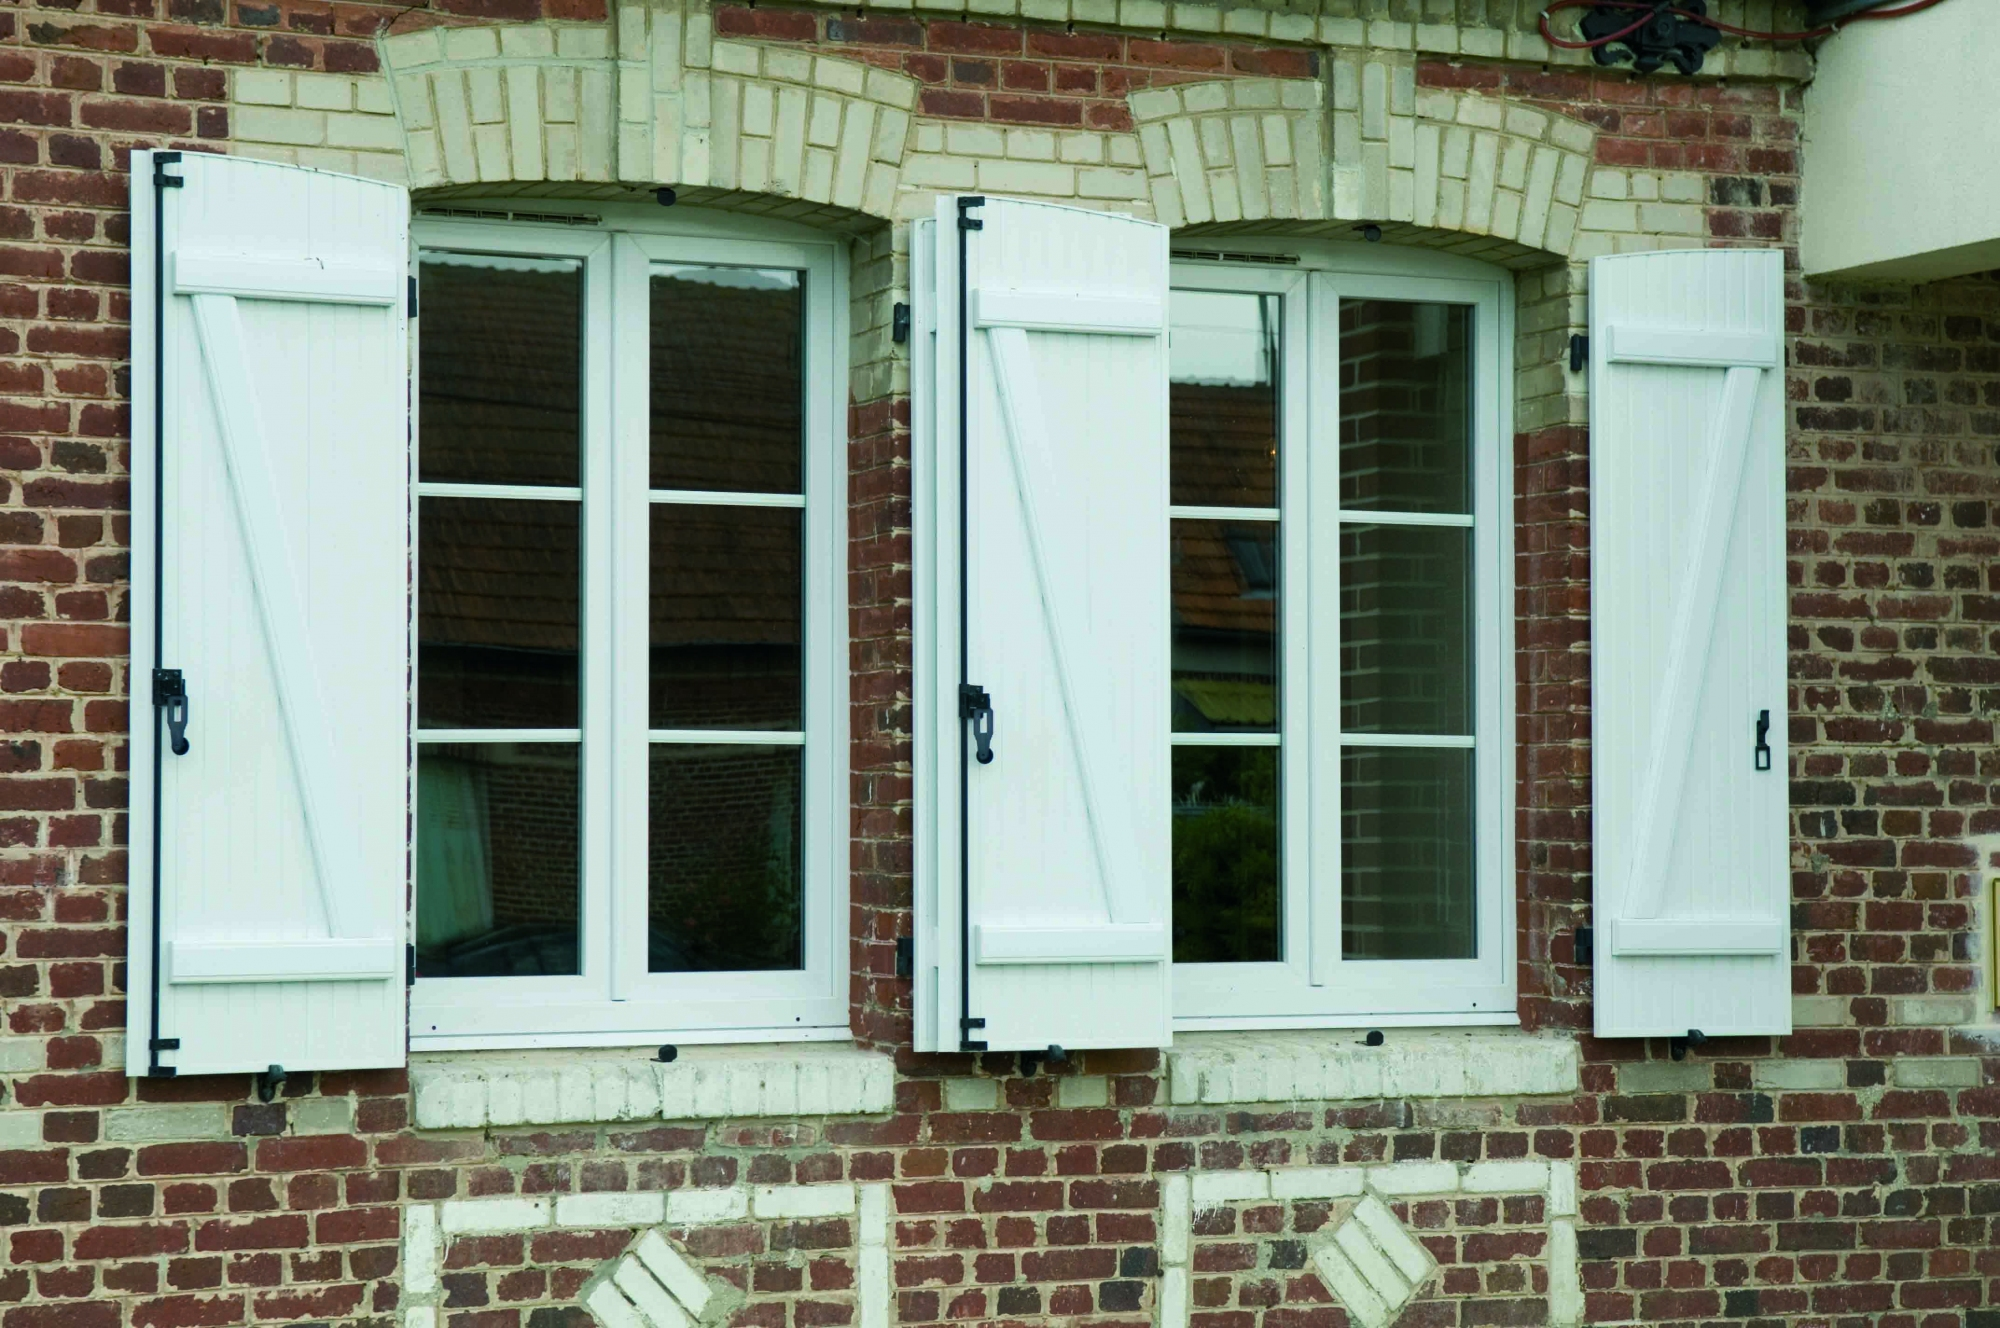 fenetre renovation sur mesure